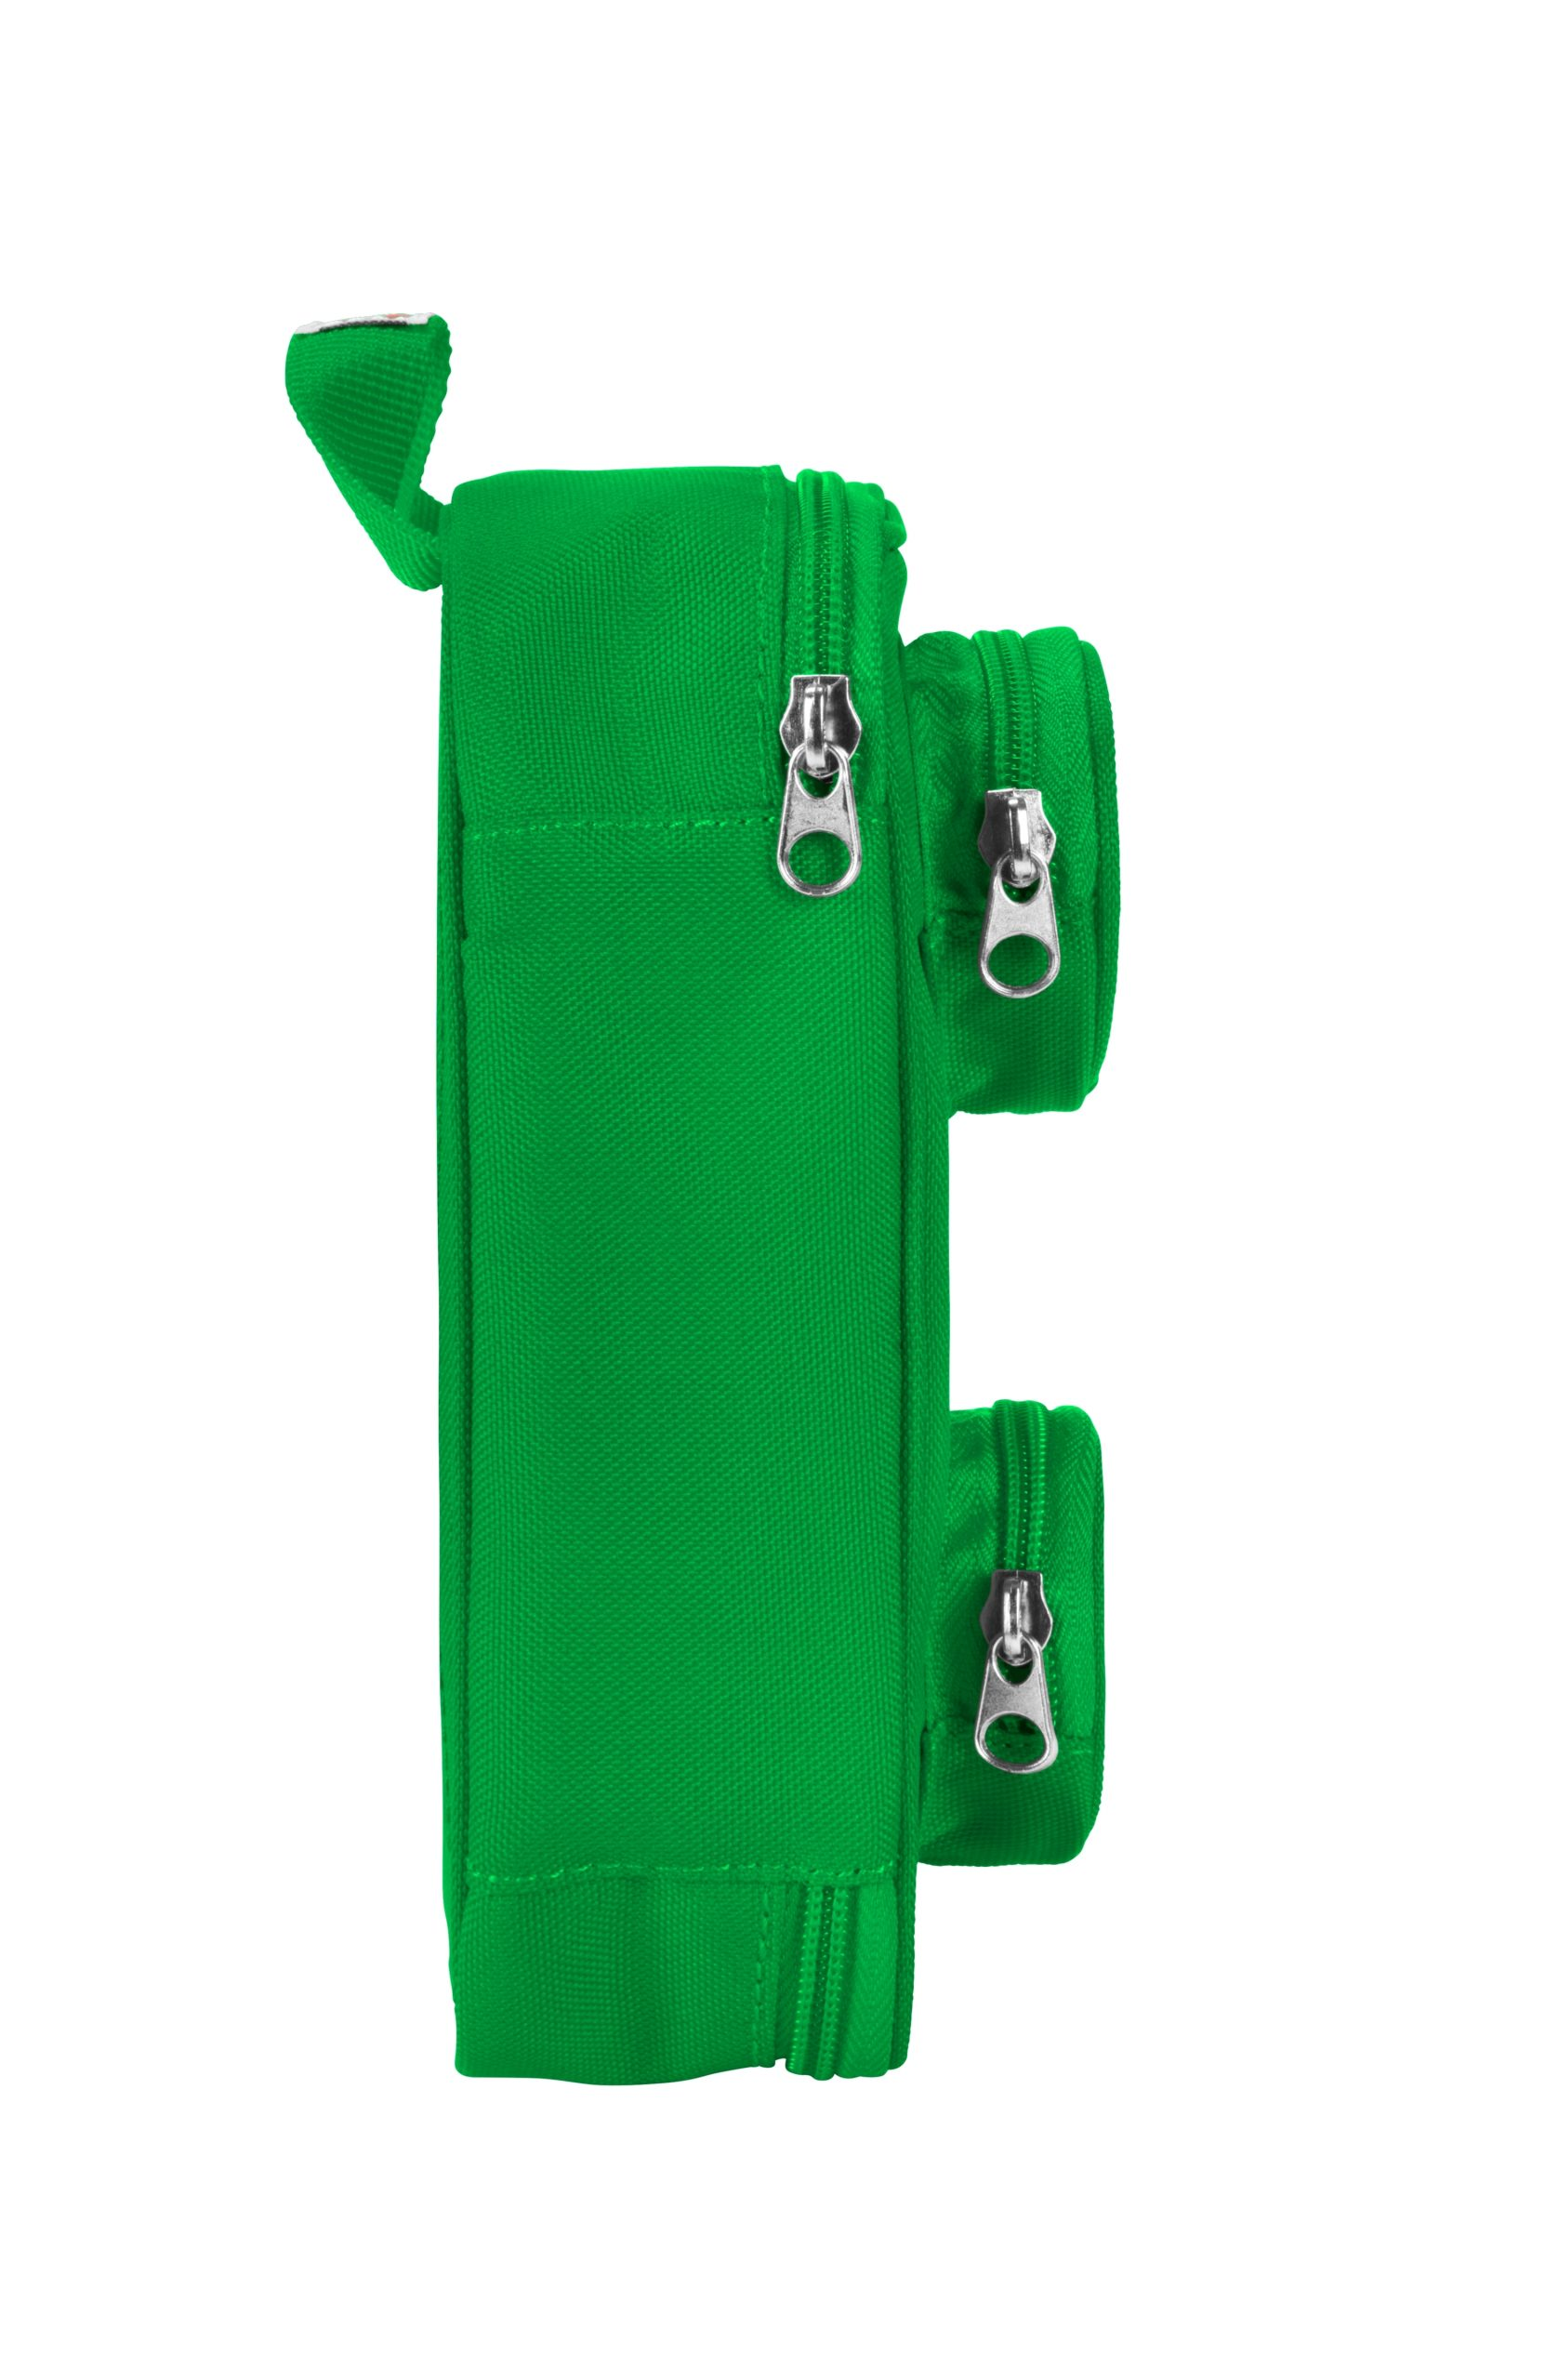 lego 5005512 brick pouch green scaled